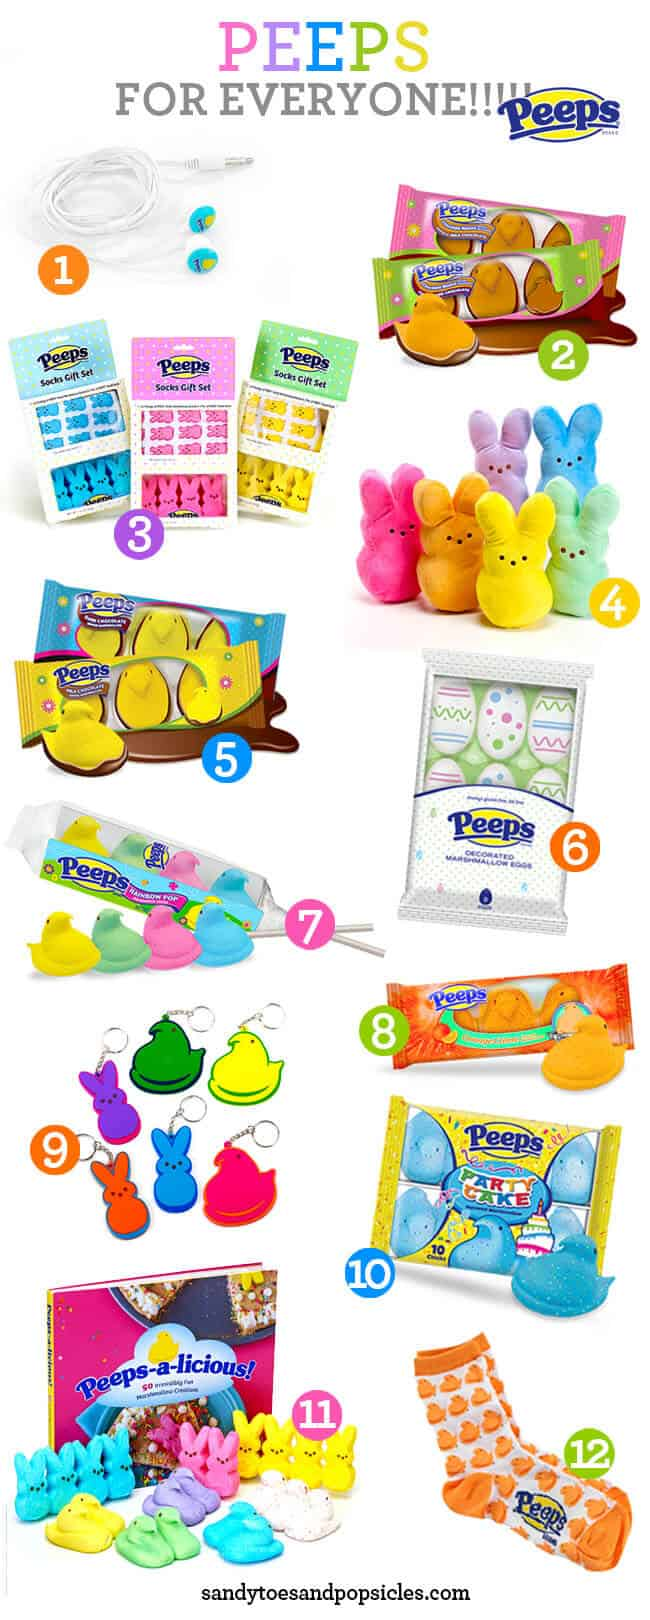 Fun Peeps Gifts for Everyone